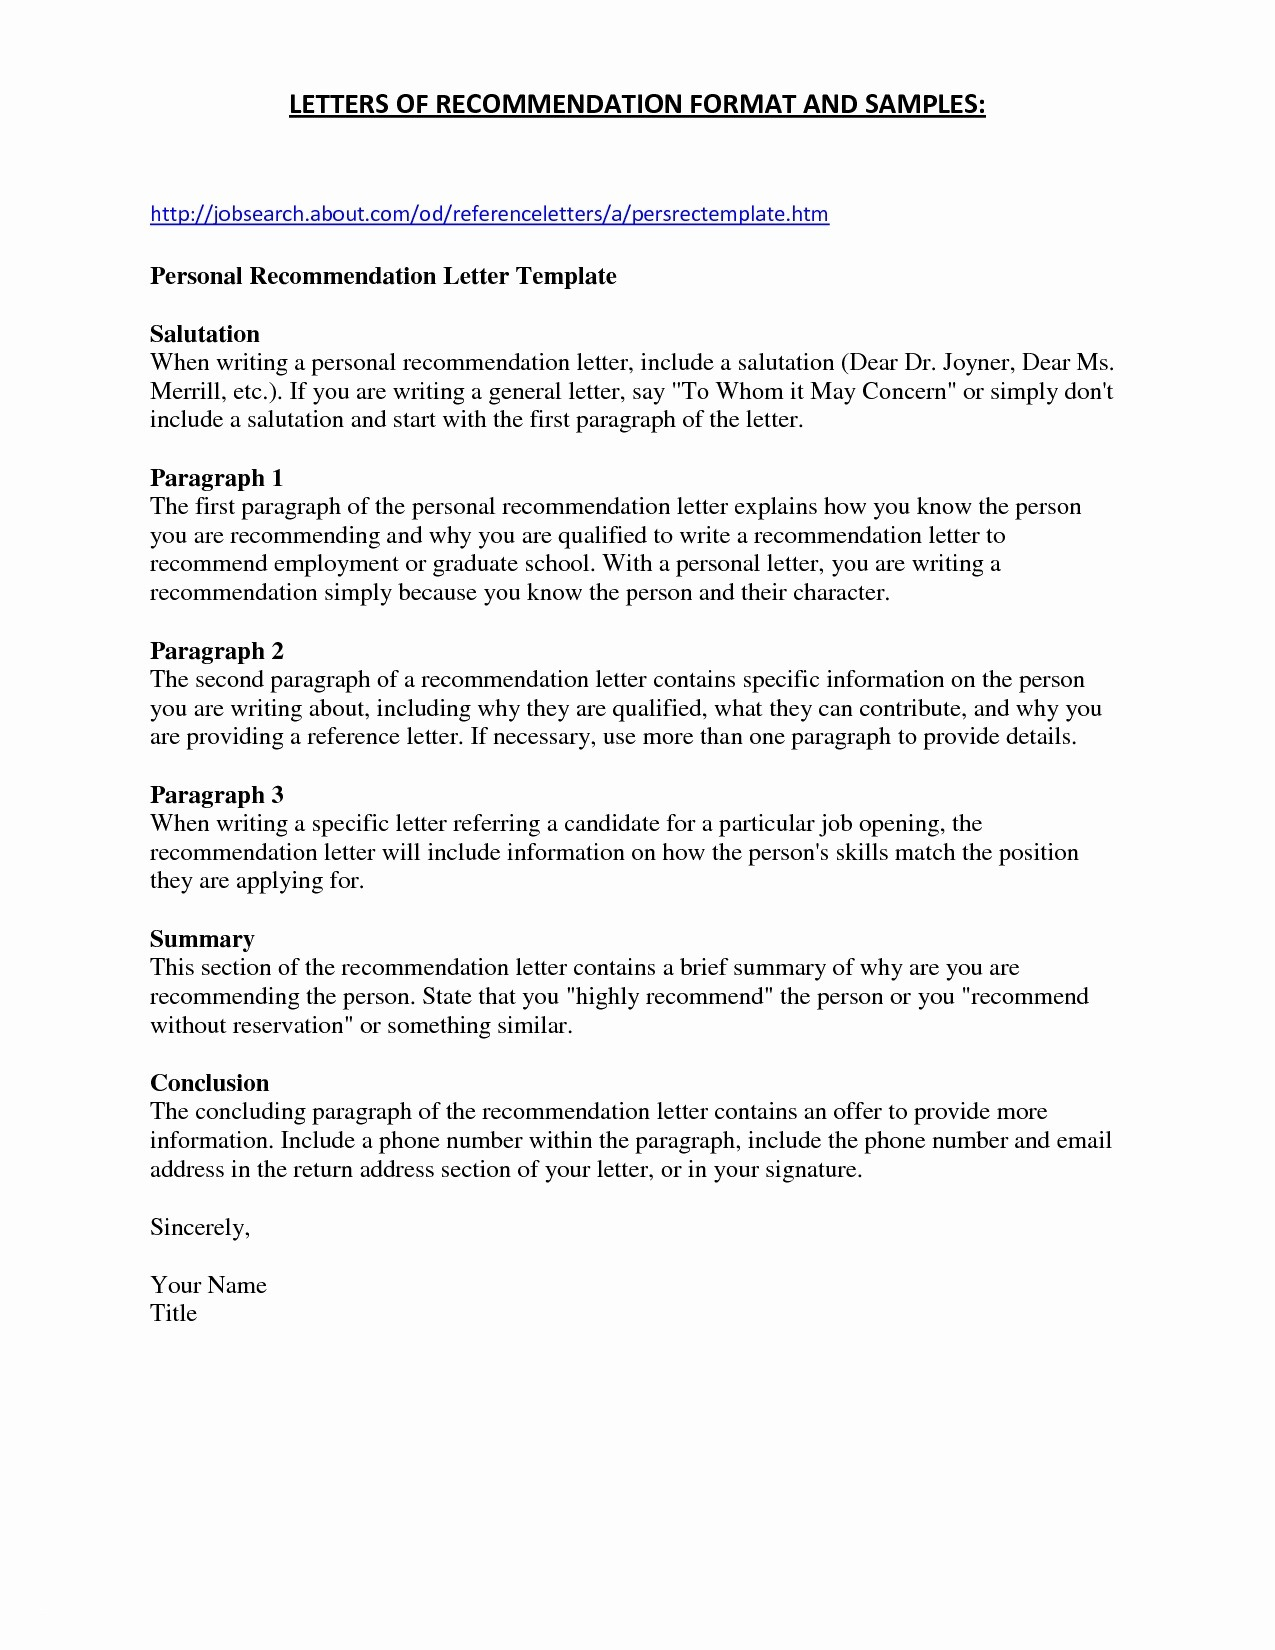 Reference Letter format Template - Resume formats In Microsoft Word New Resume formats Microsoft Word